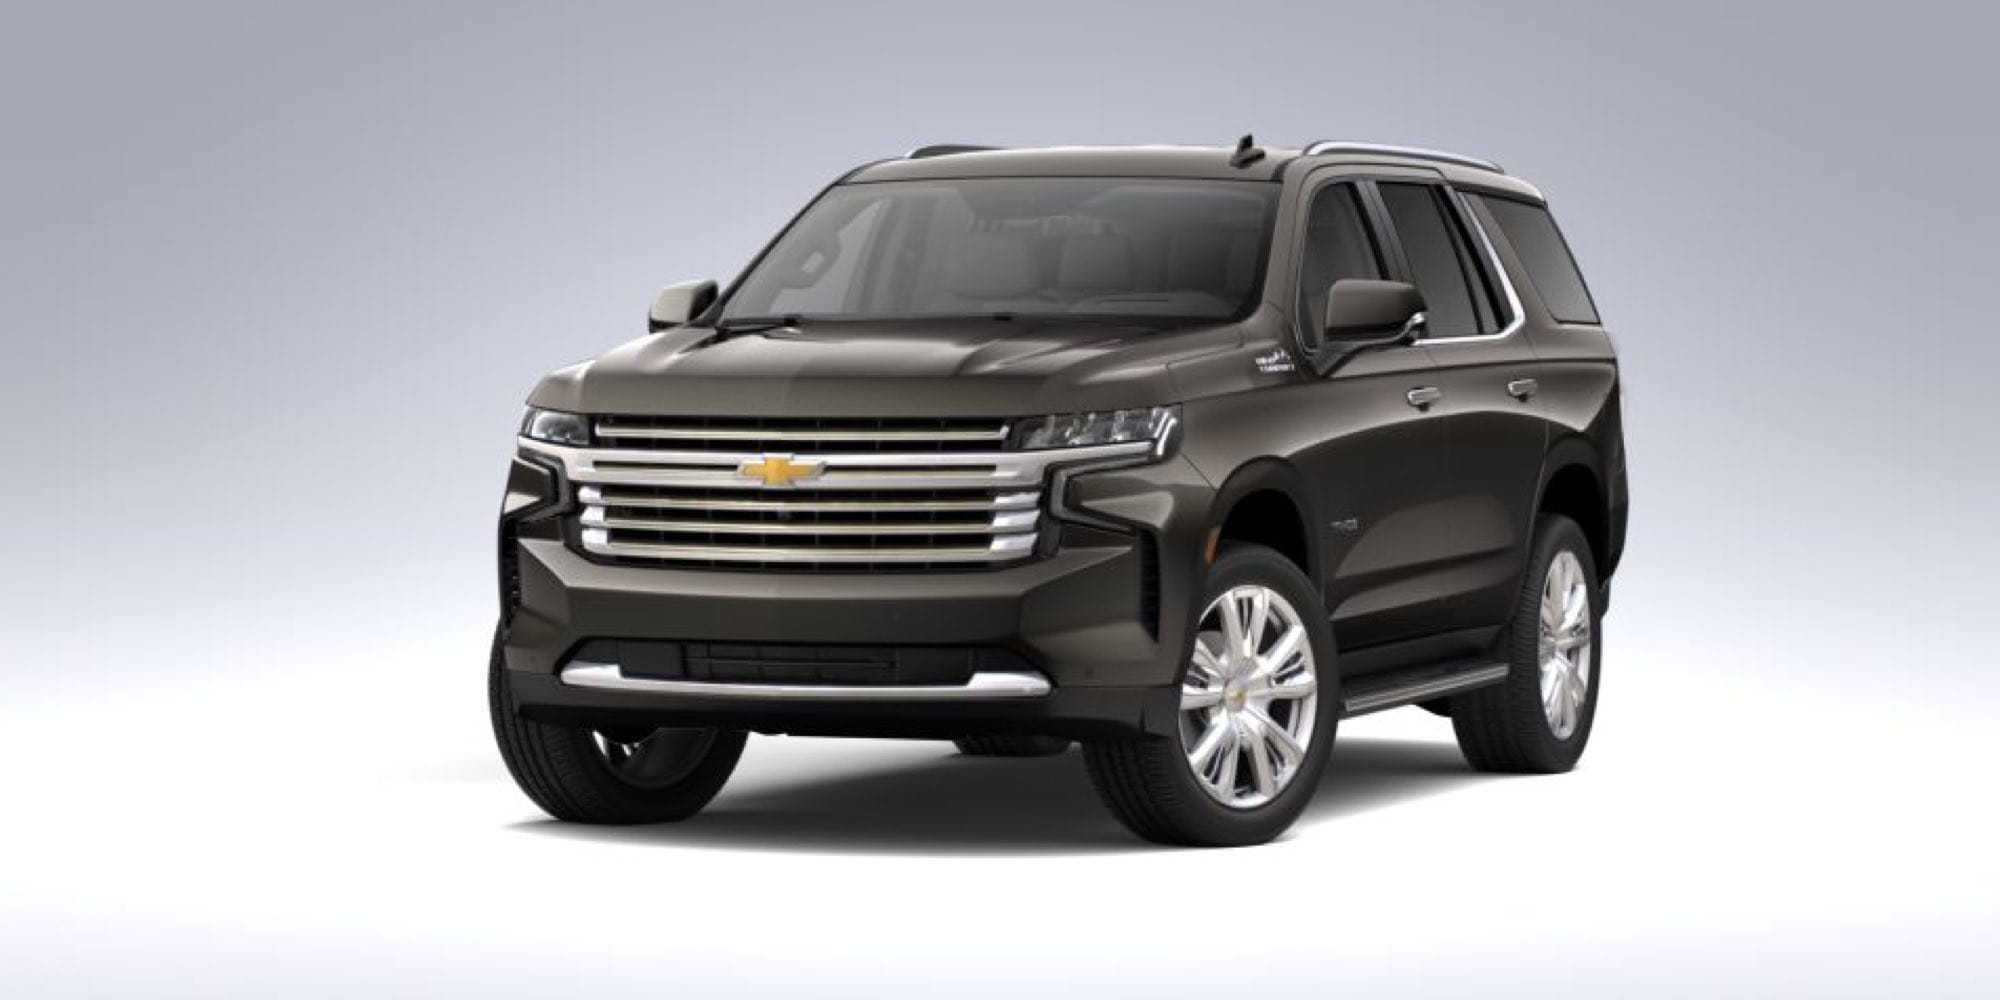 Graywood Metallic Tahoe